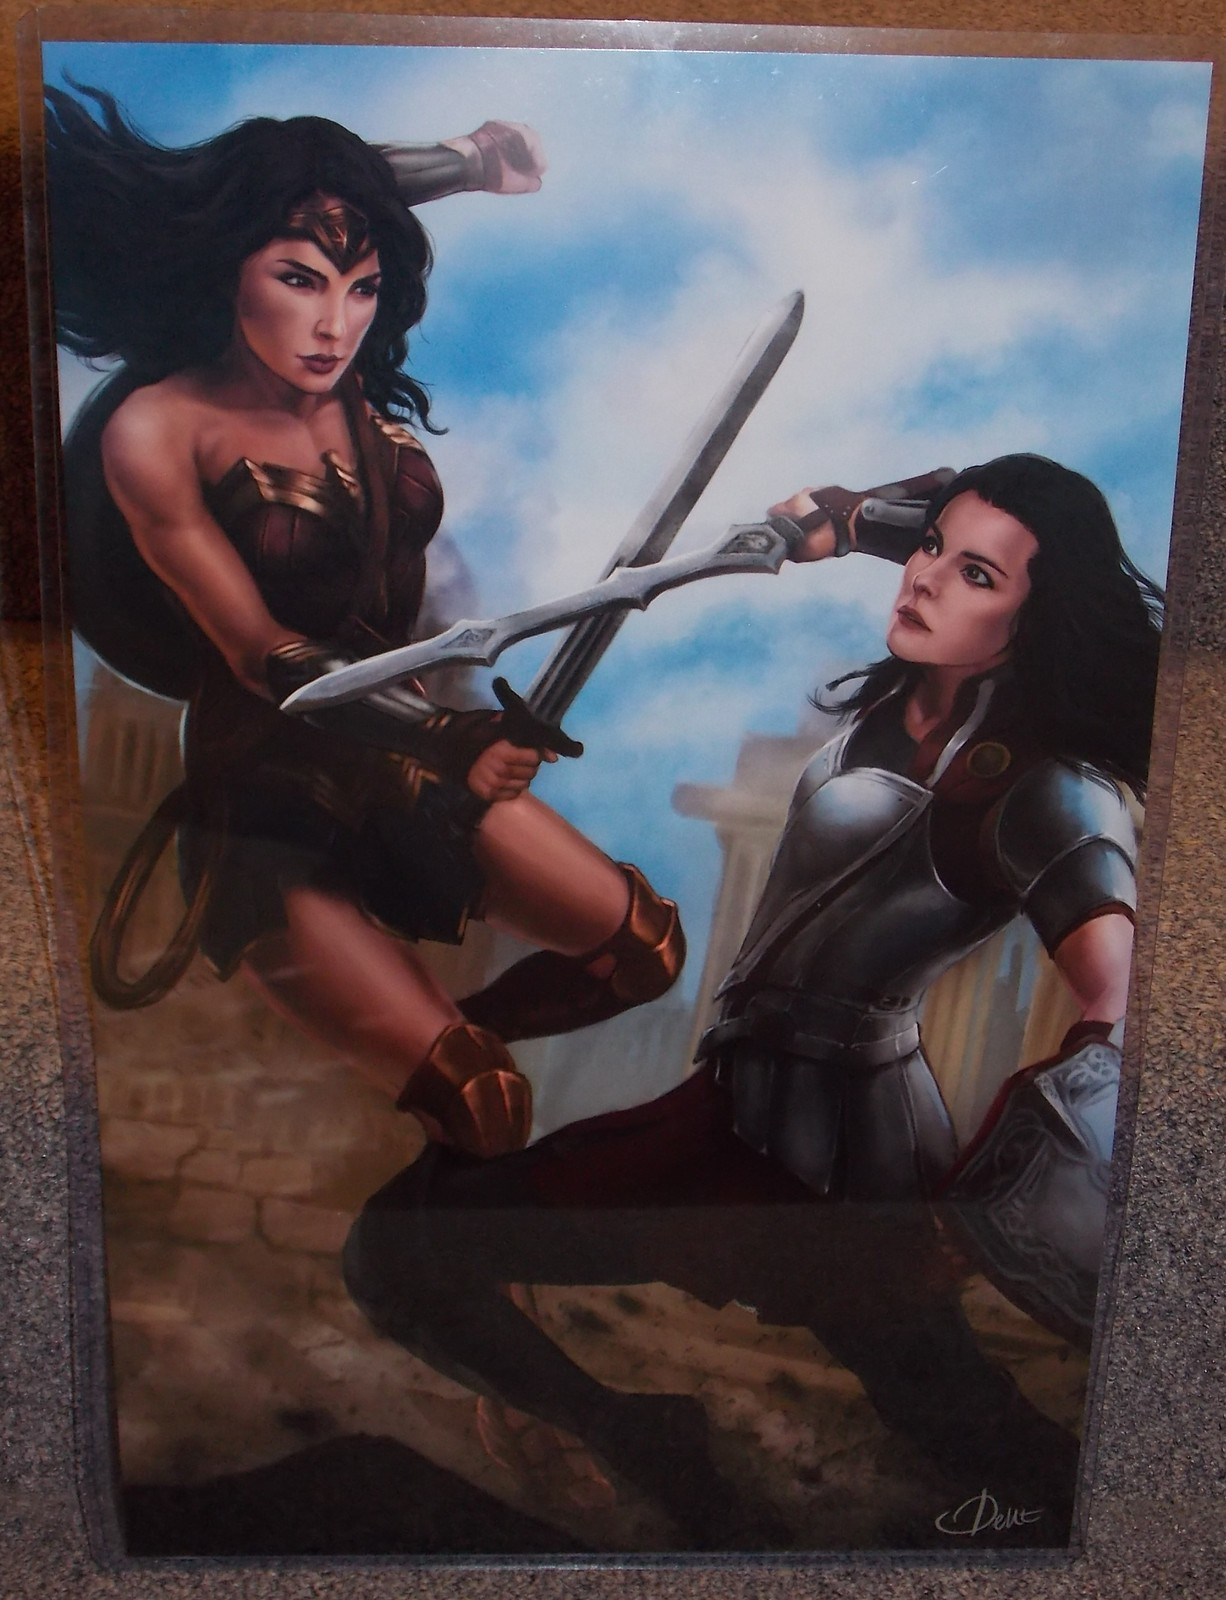 Primary image for Wonder Woman vs Lady Sif Glossy Print 11 x 17 In Hard Plastic Sleeve